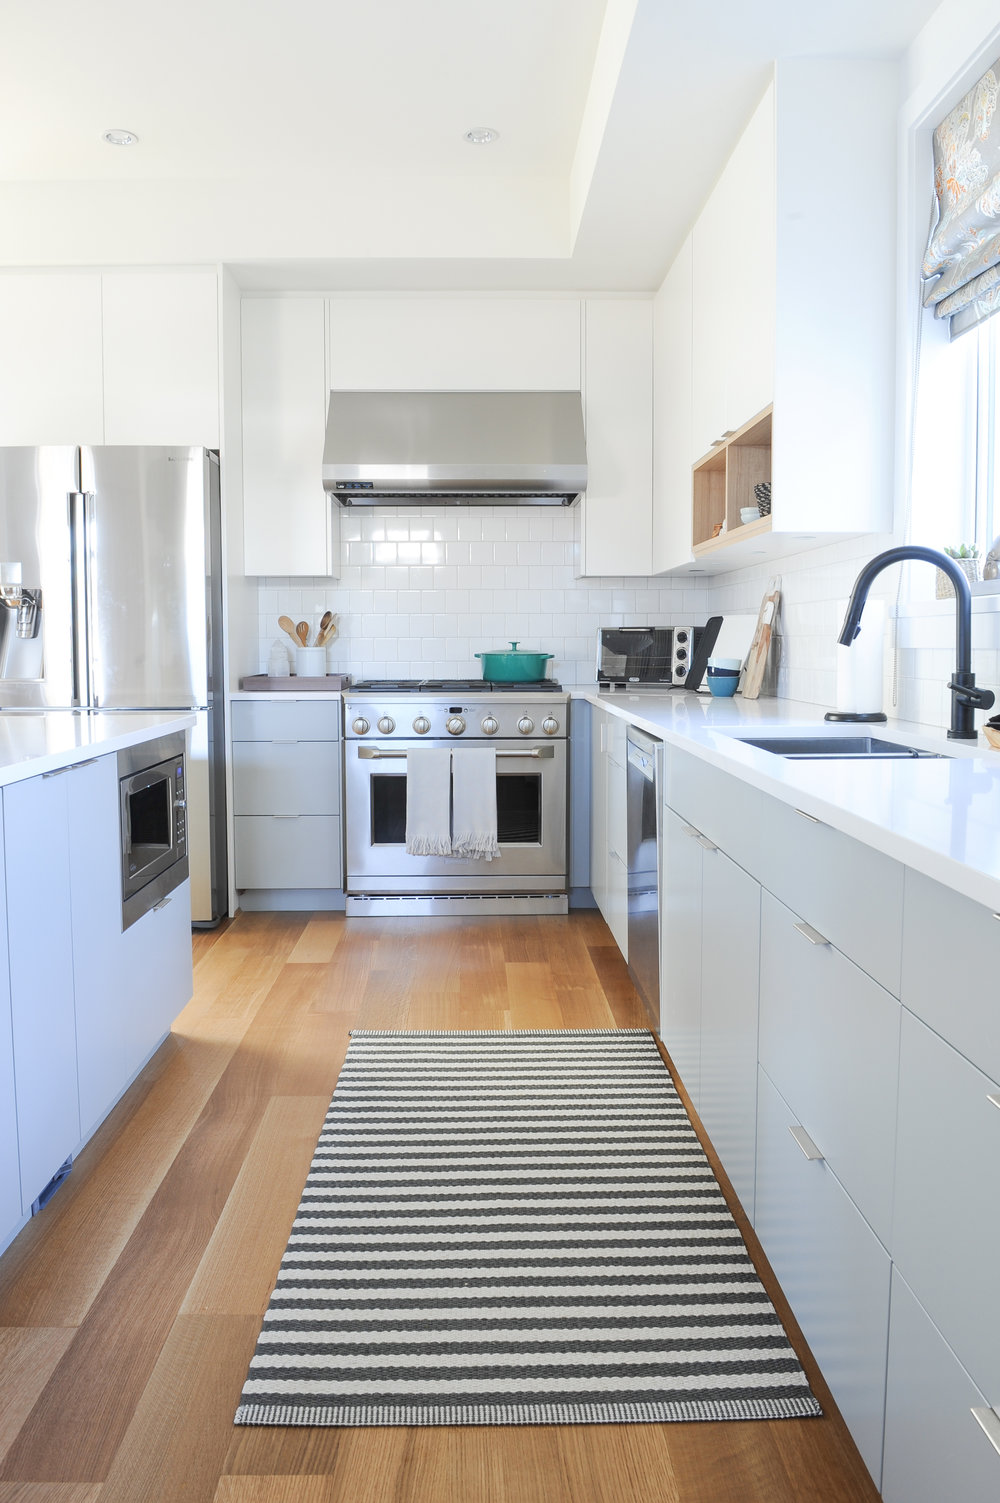 A large striped carpet sits on beautiful hardwood floors in a bright and modern kitchen complete with a matte black faucet, large steel range hood, and gas stove.